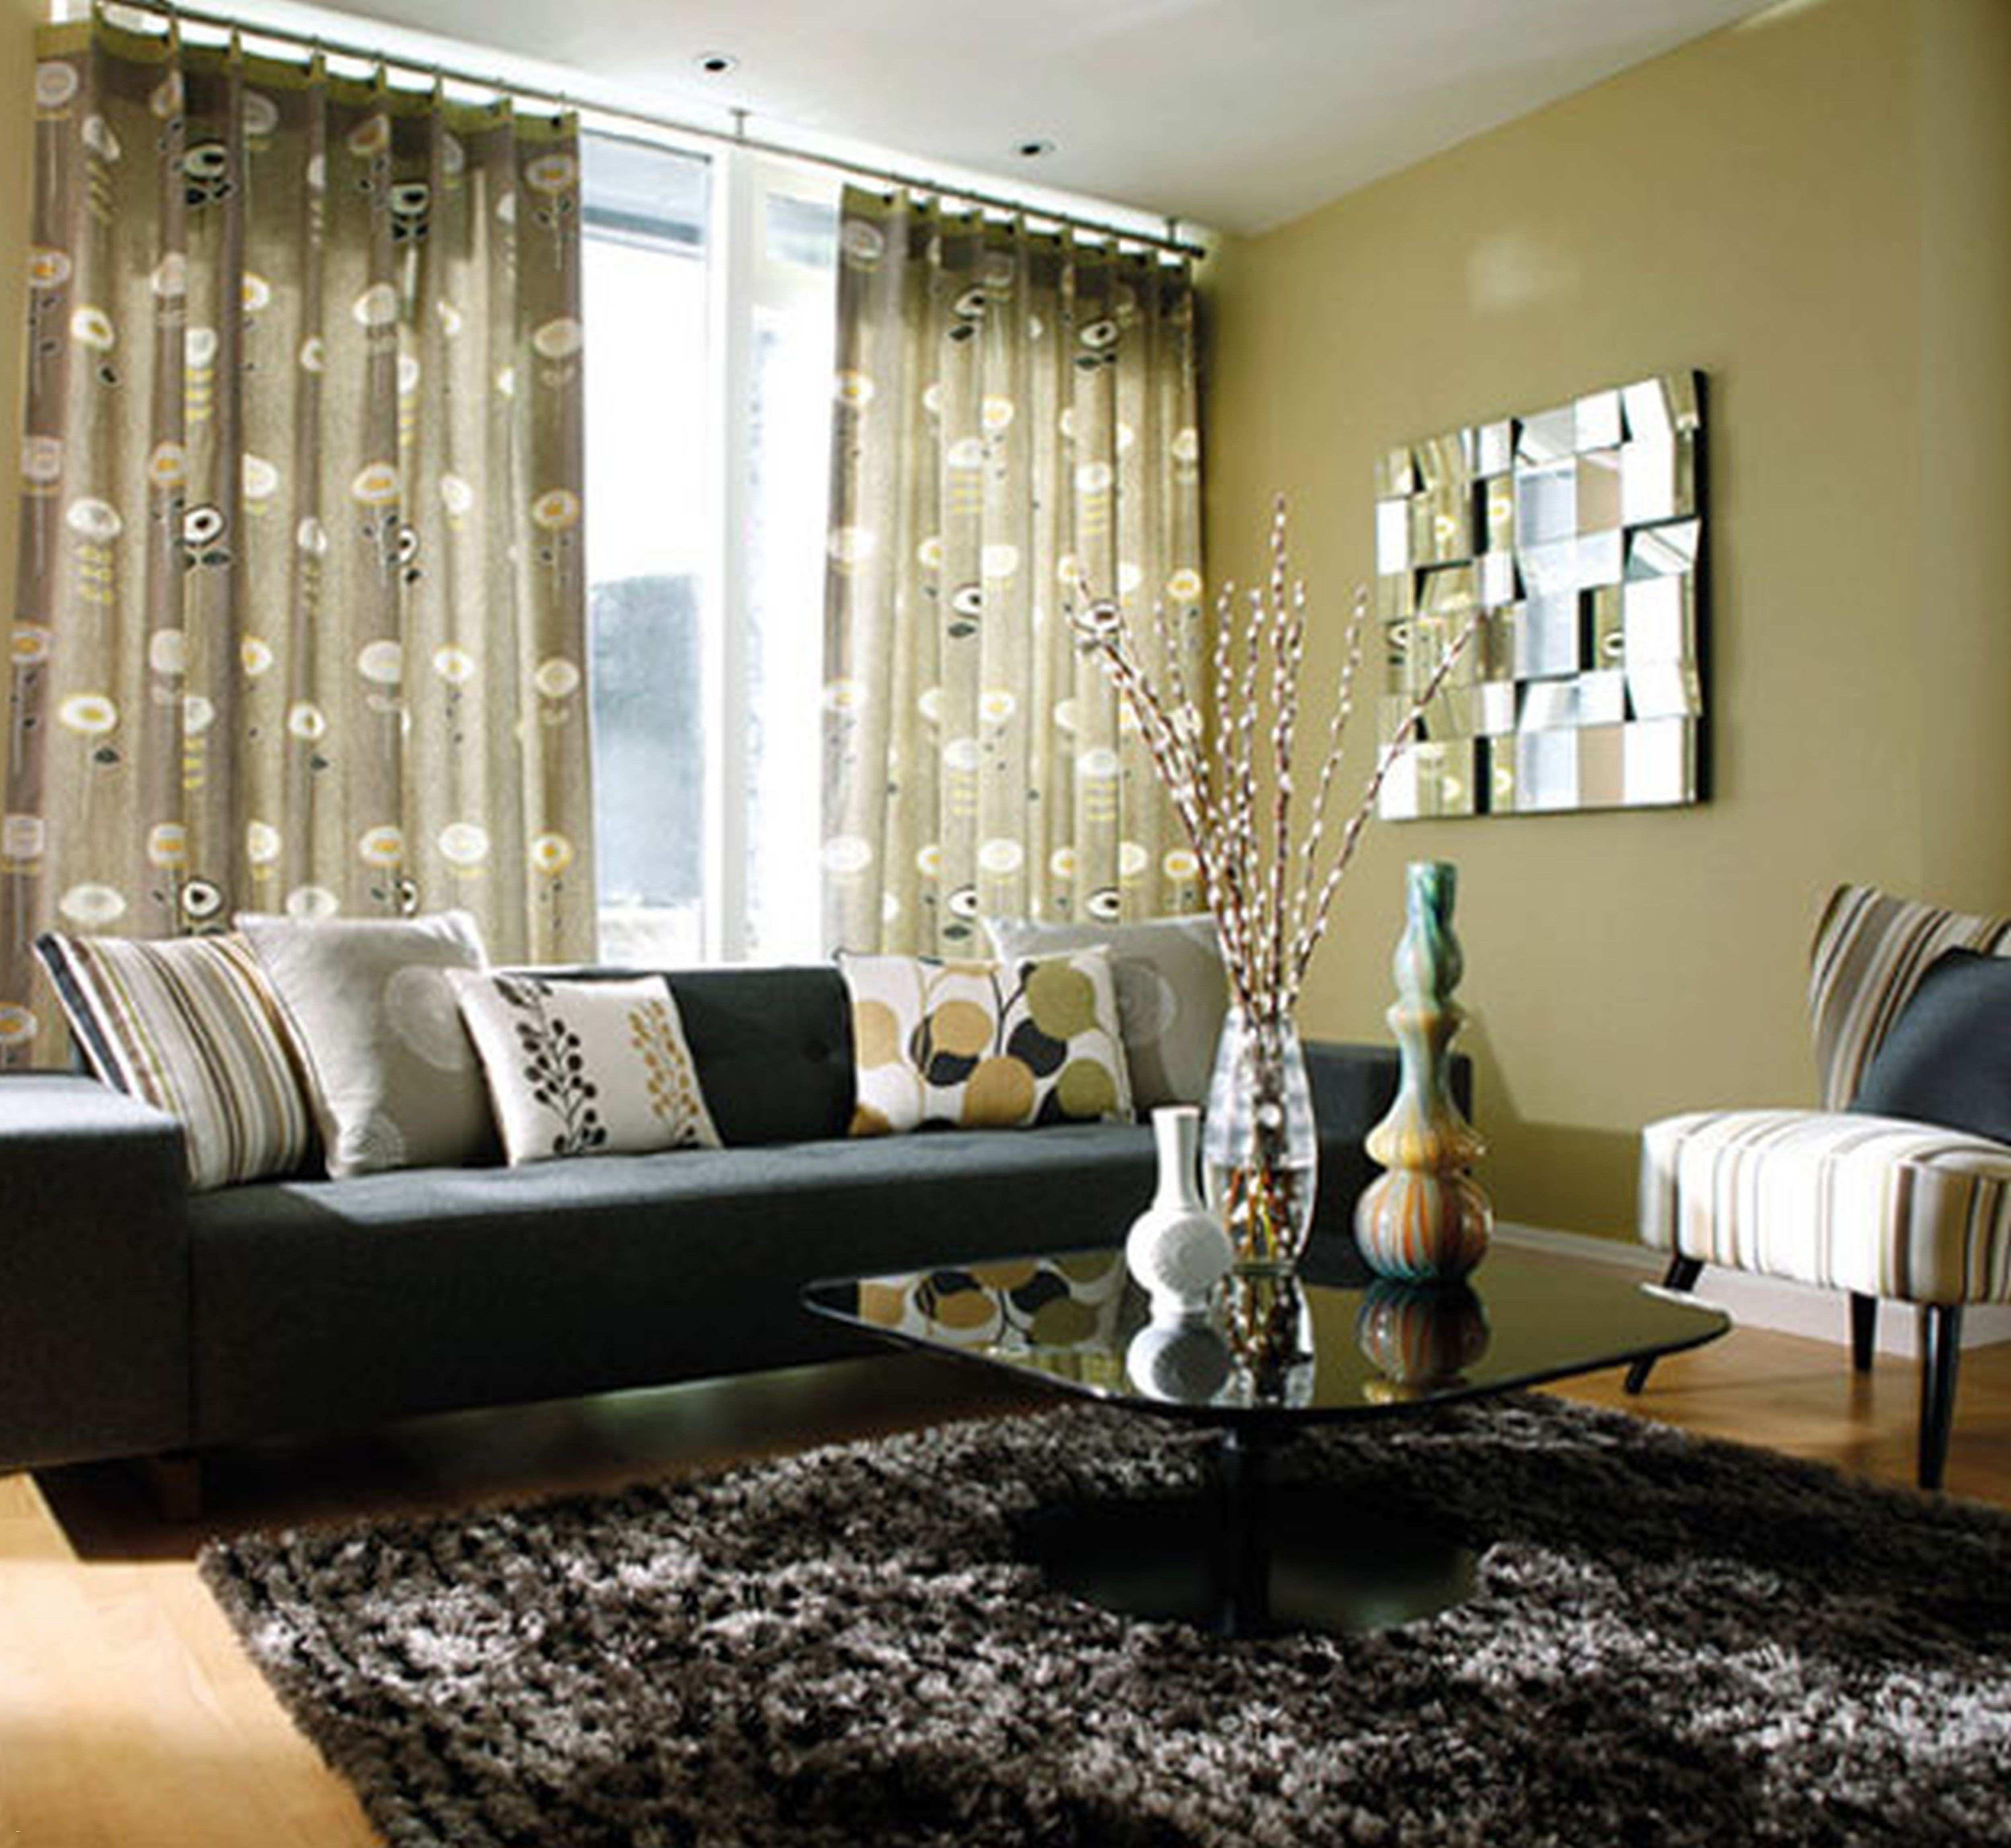 Home Designs Living Room Decoration Ideas Inspirational Metal Wall